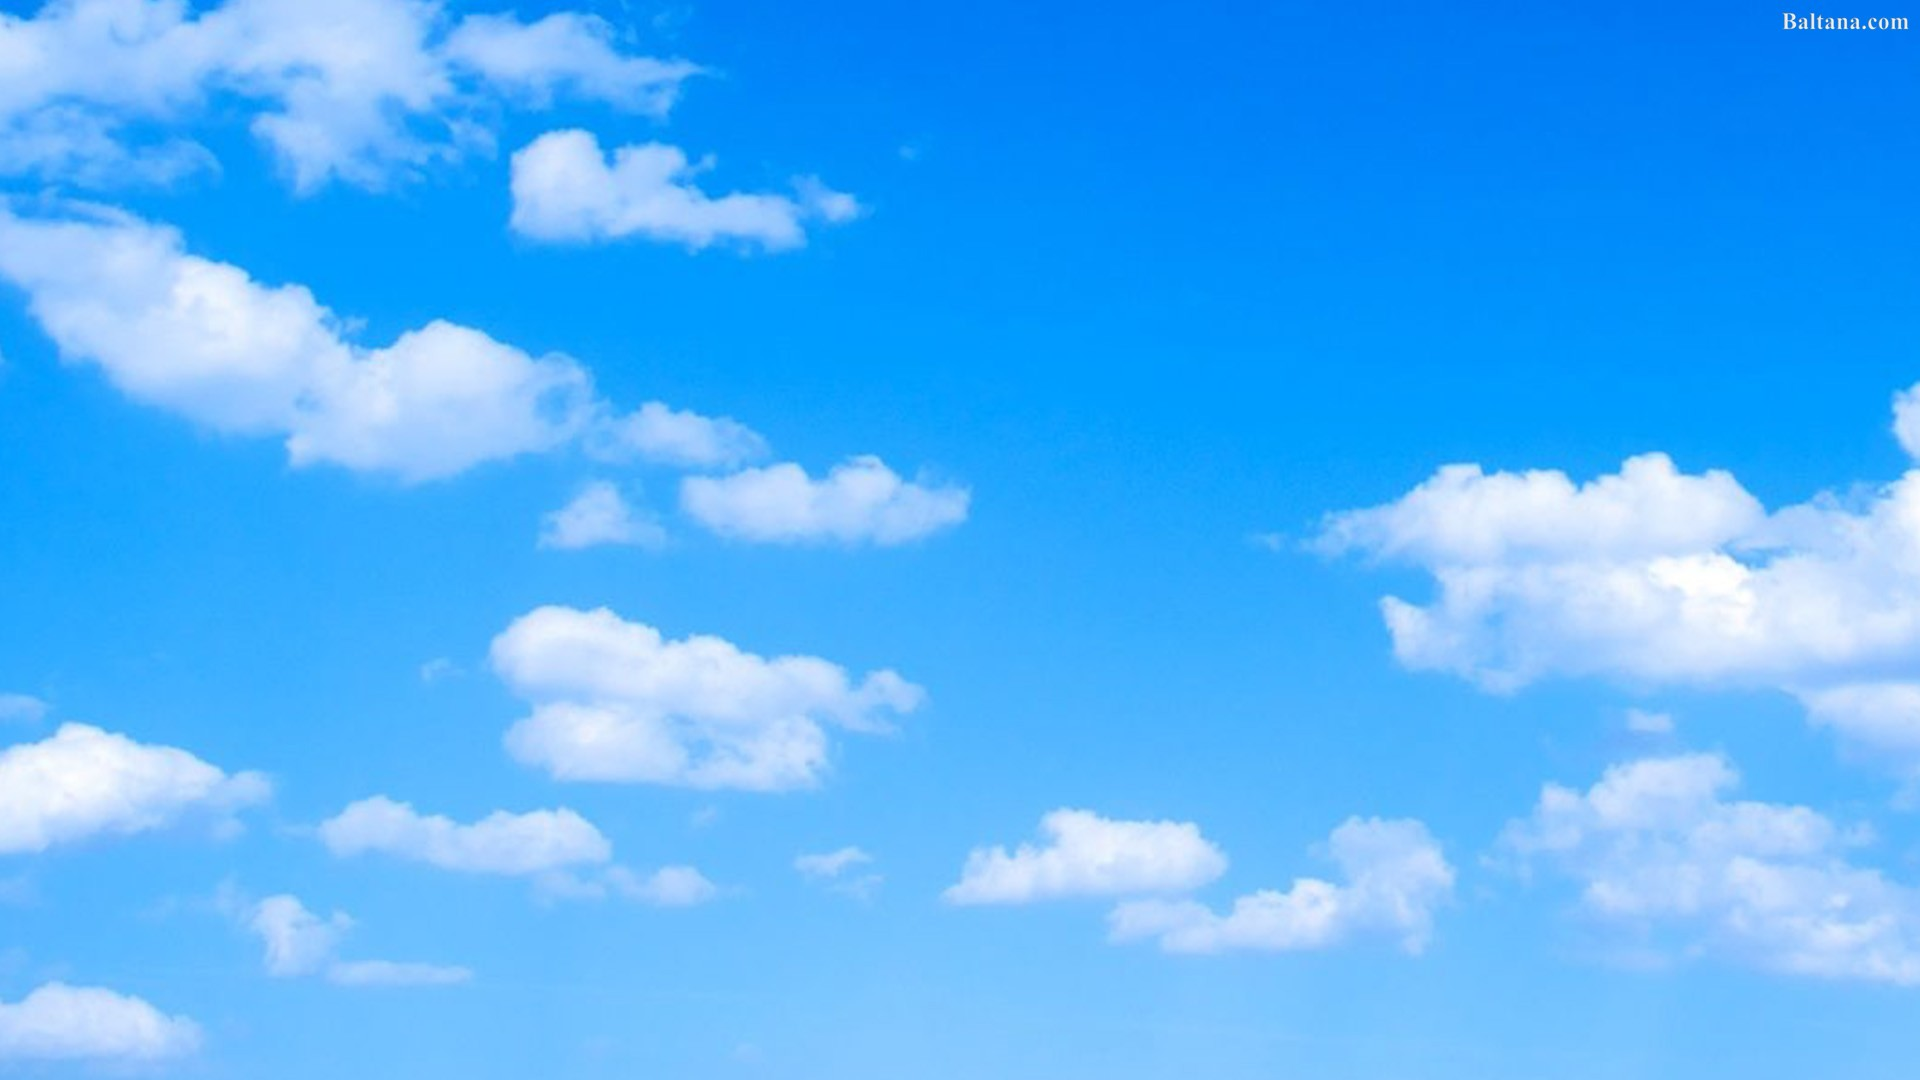 Clouds Background Hd Sky Hd Images Png 1920x1080 Wallpaper Teahub Io